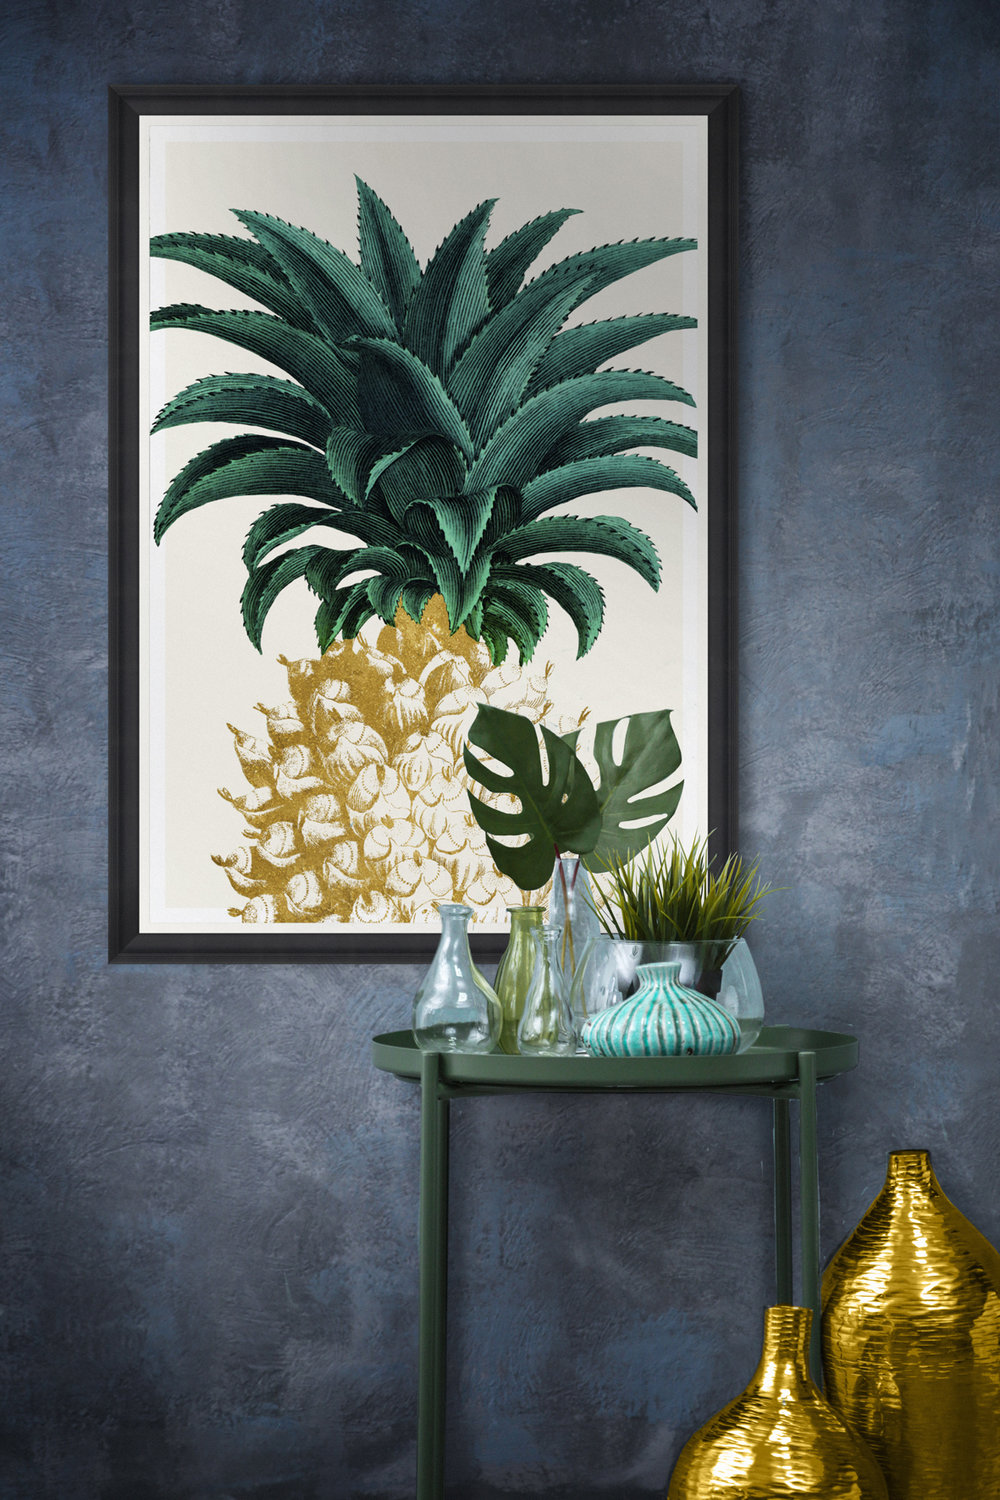 Pineapple Sweet Framed Wall Art by MINDTHEGAP.jpg